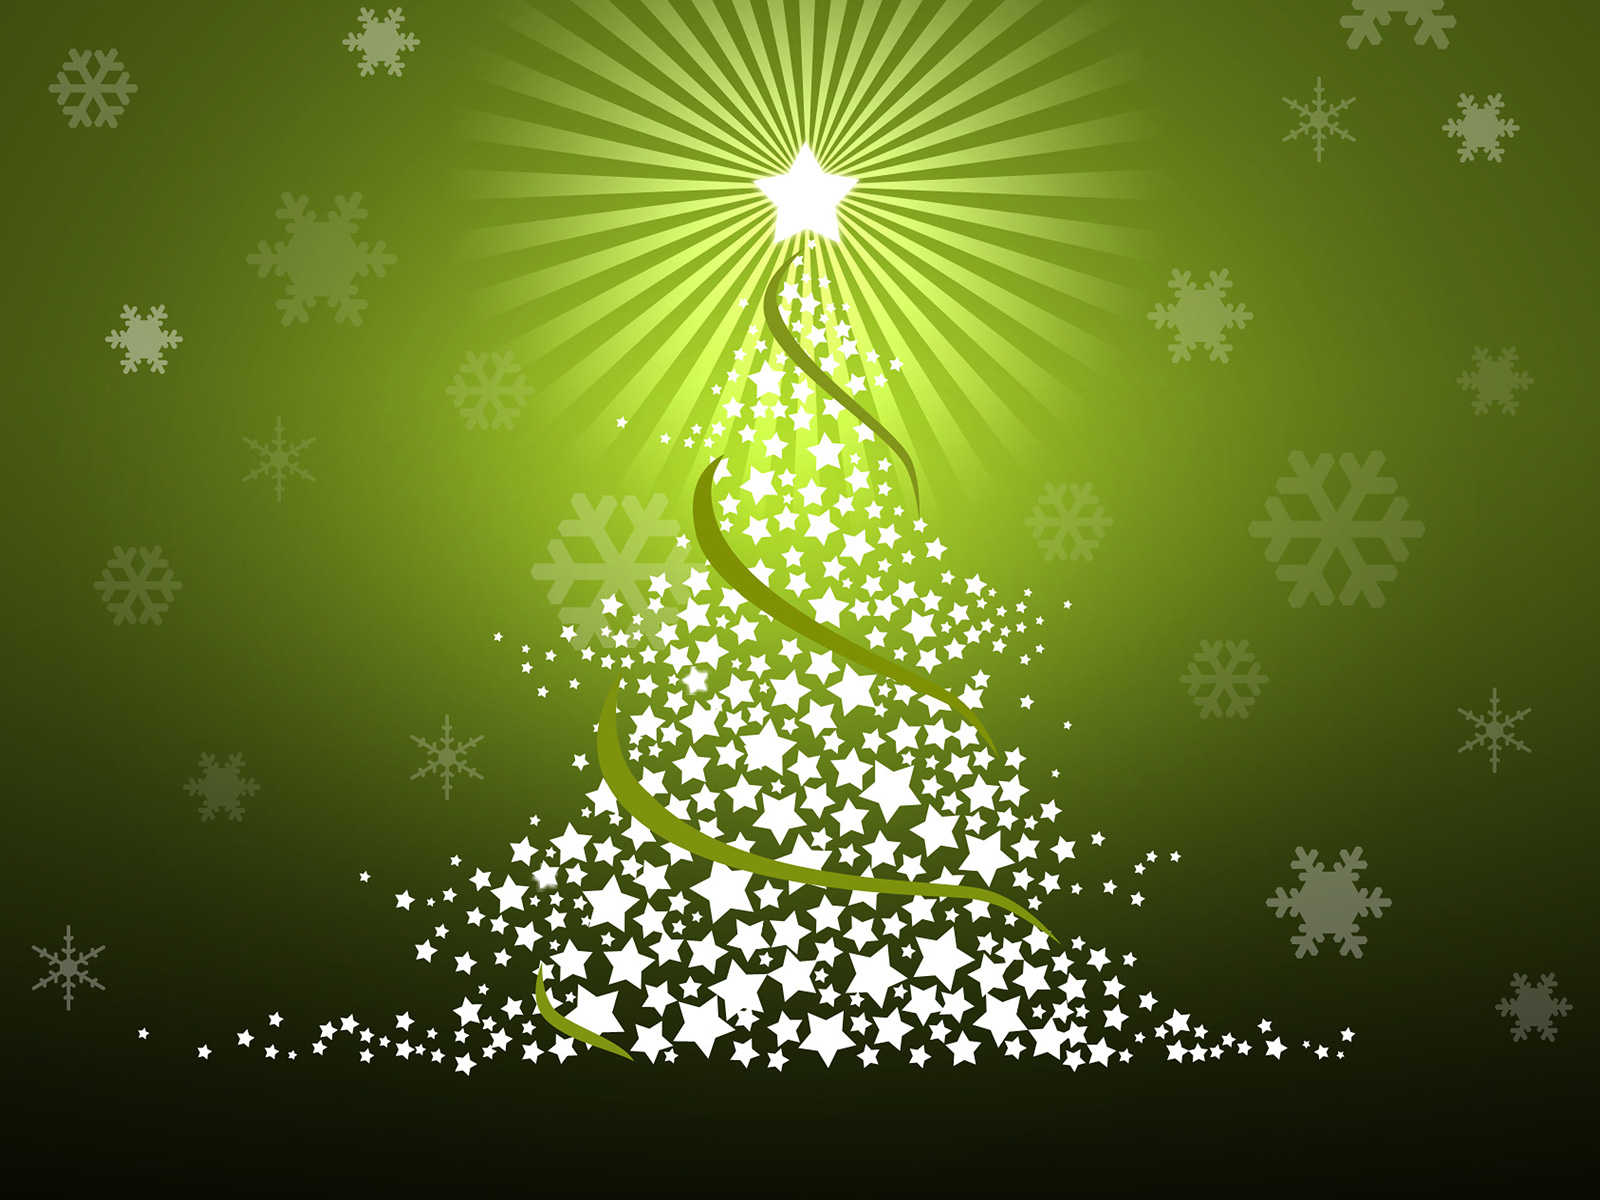 Free Christmas Wallpapers and PowerPoint Backgrounds Pictures Green